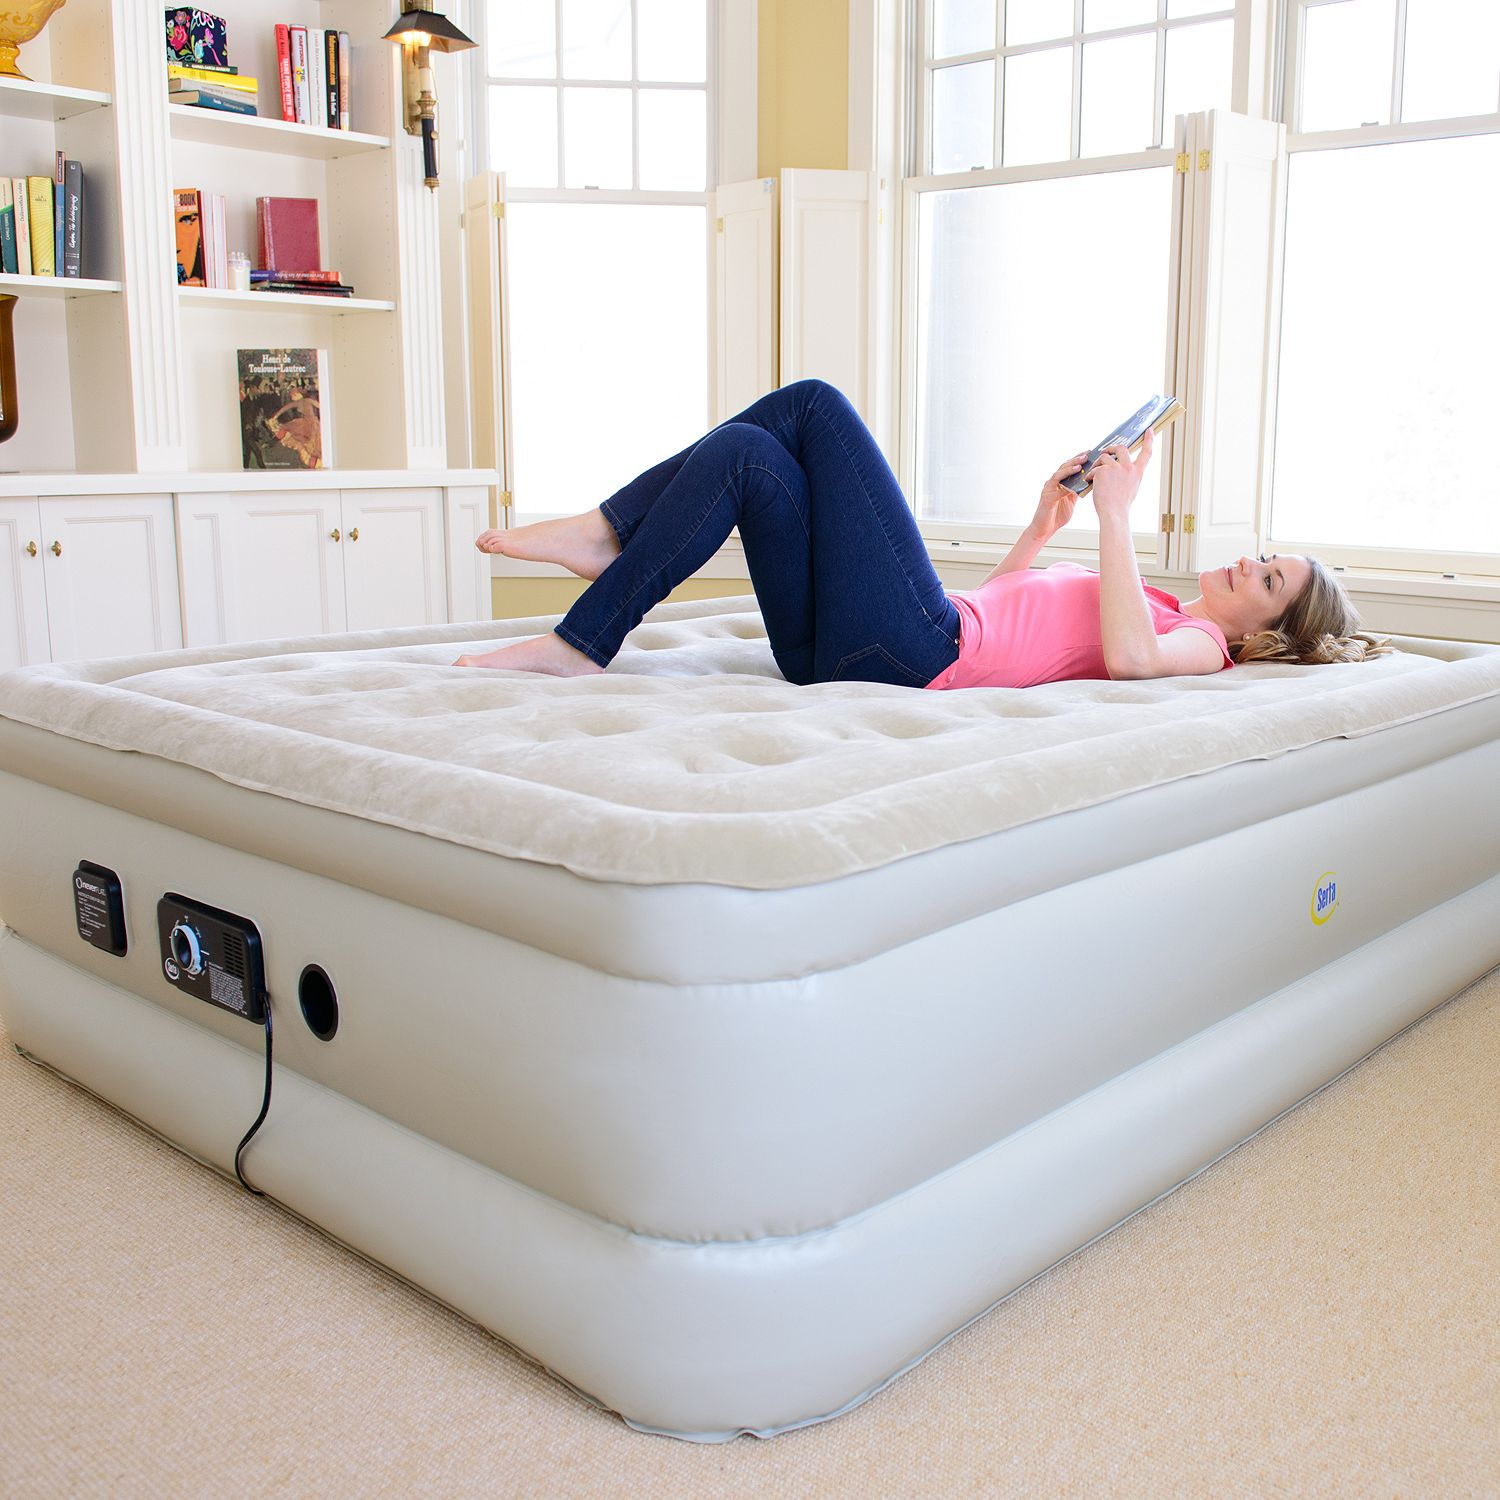 Best queen size inflated air mattress which inflatable Mattress queen size